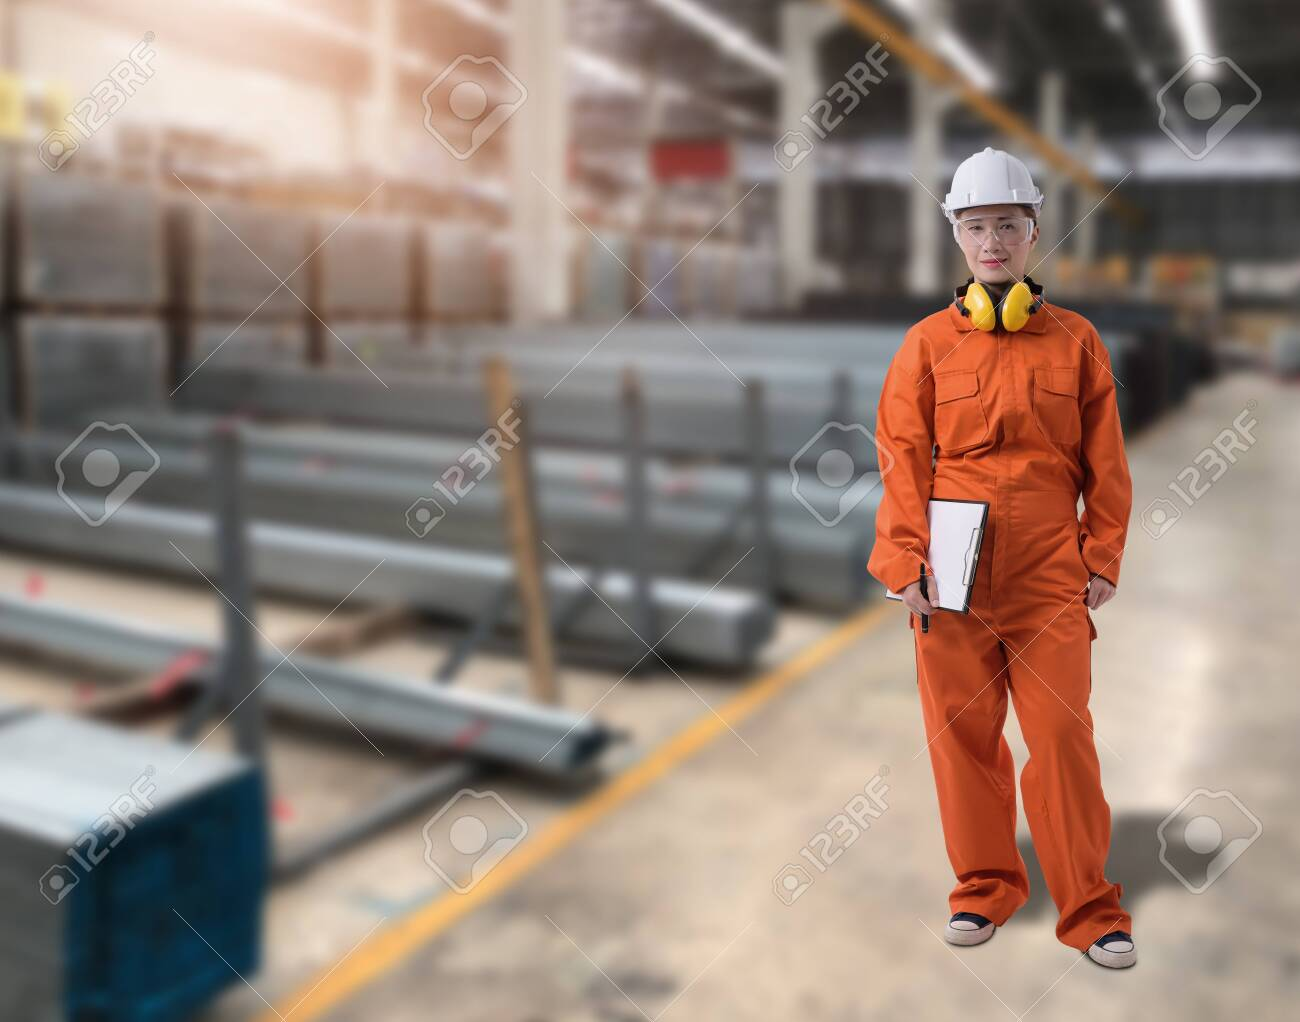 Portrait of Female staff warehouse operator with Blurred the background of Construction material on product shelf in store - 149184546